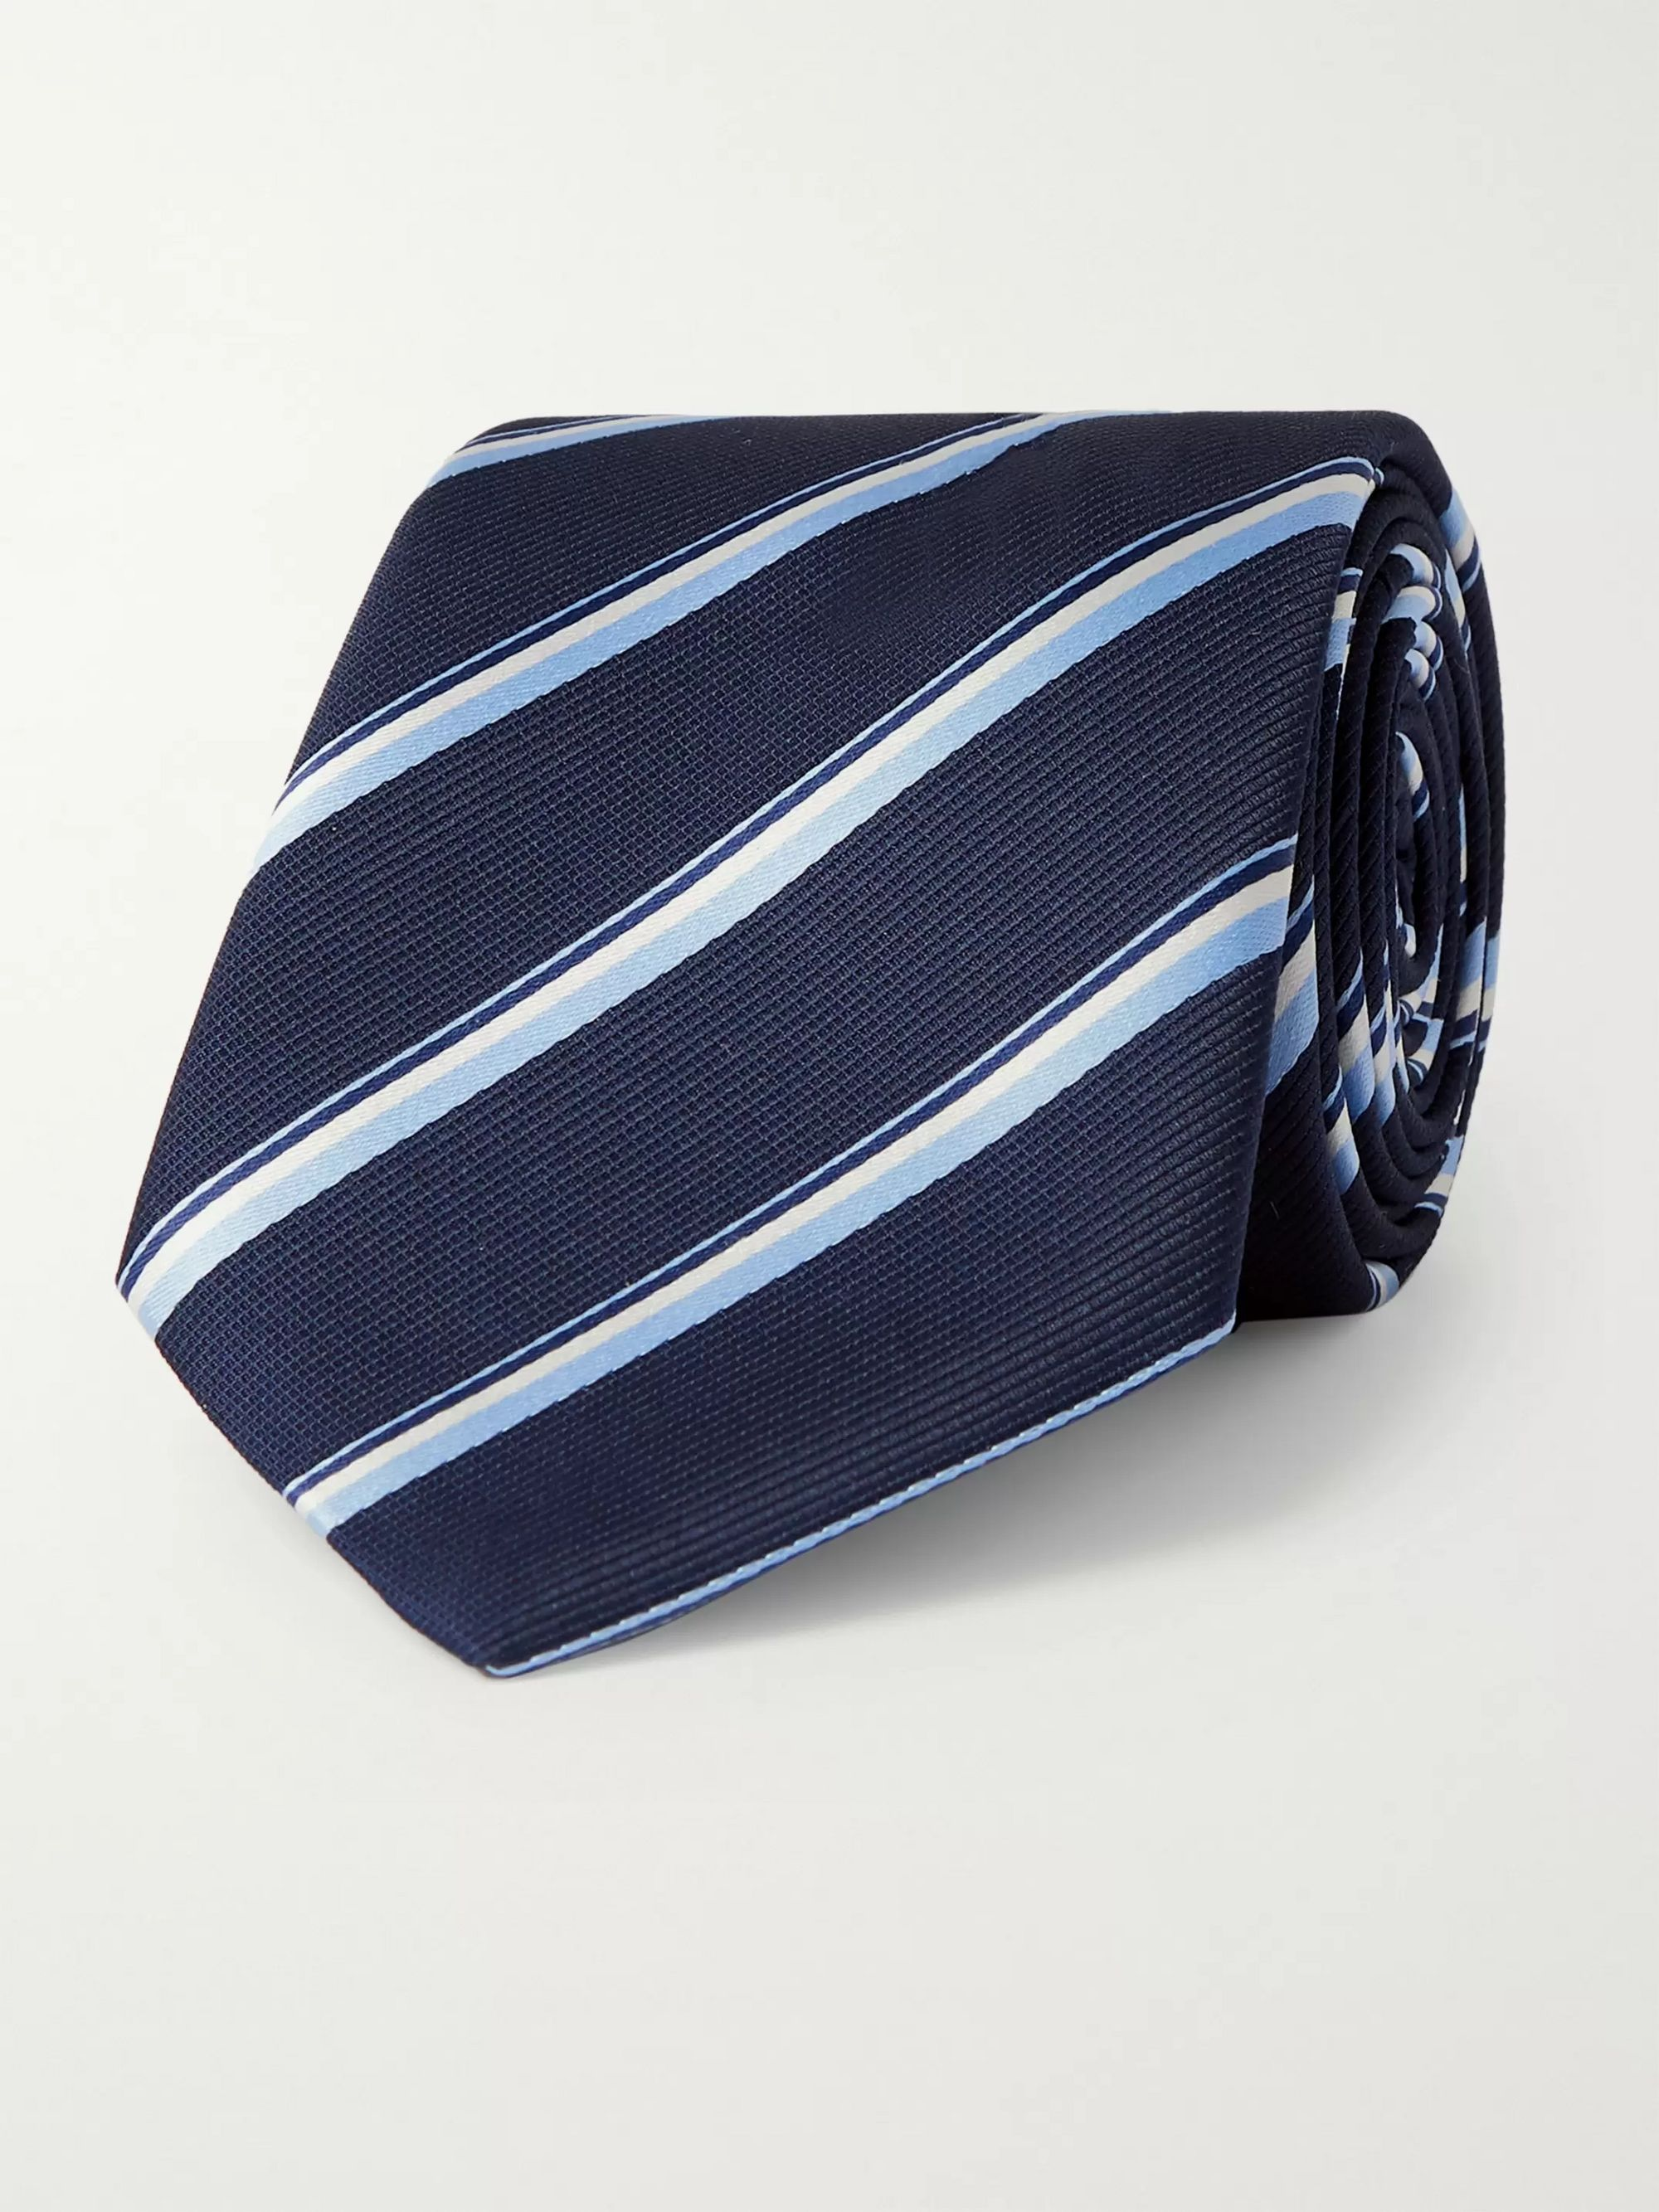 Hugo Boss 7.5cm Striped Silk-Jacquard Tie